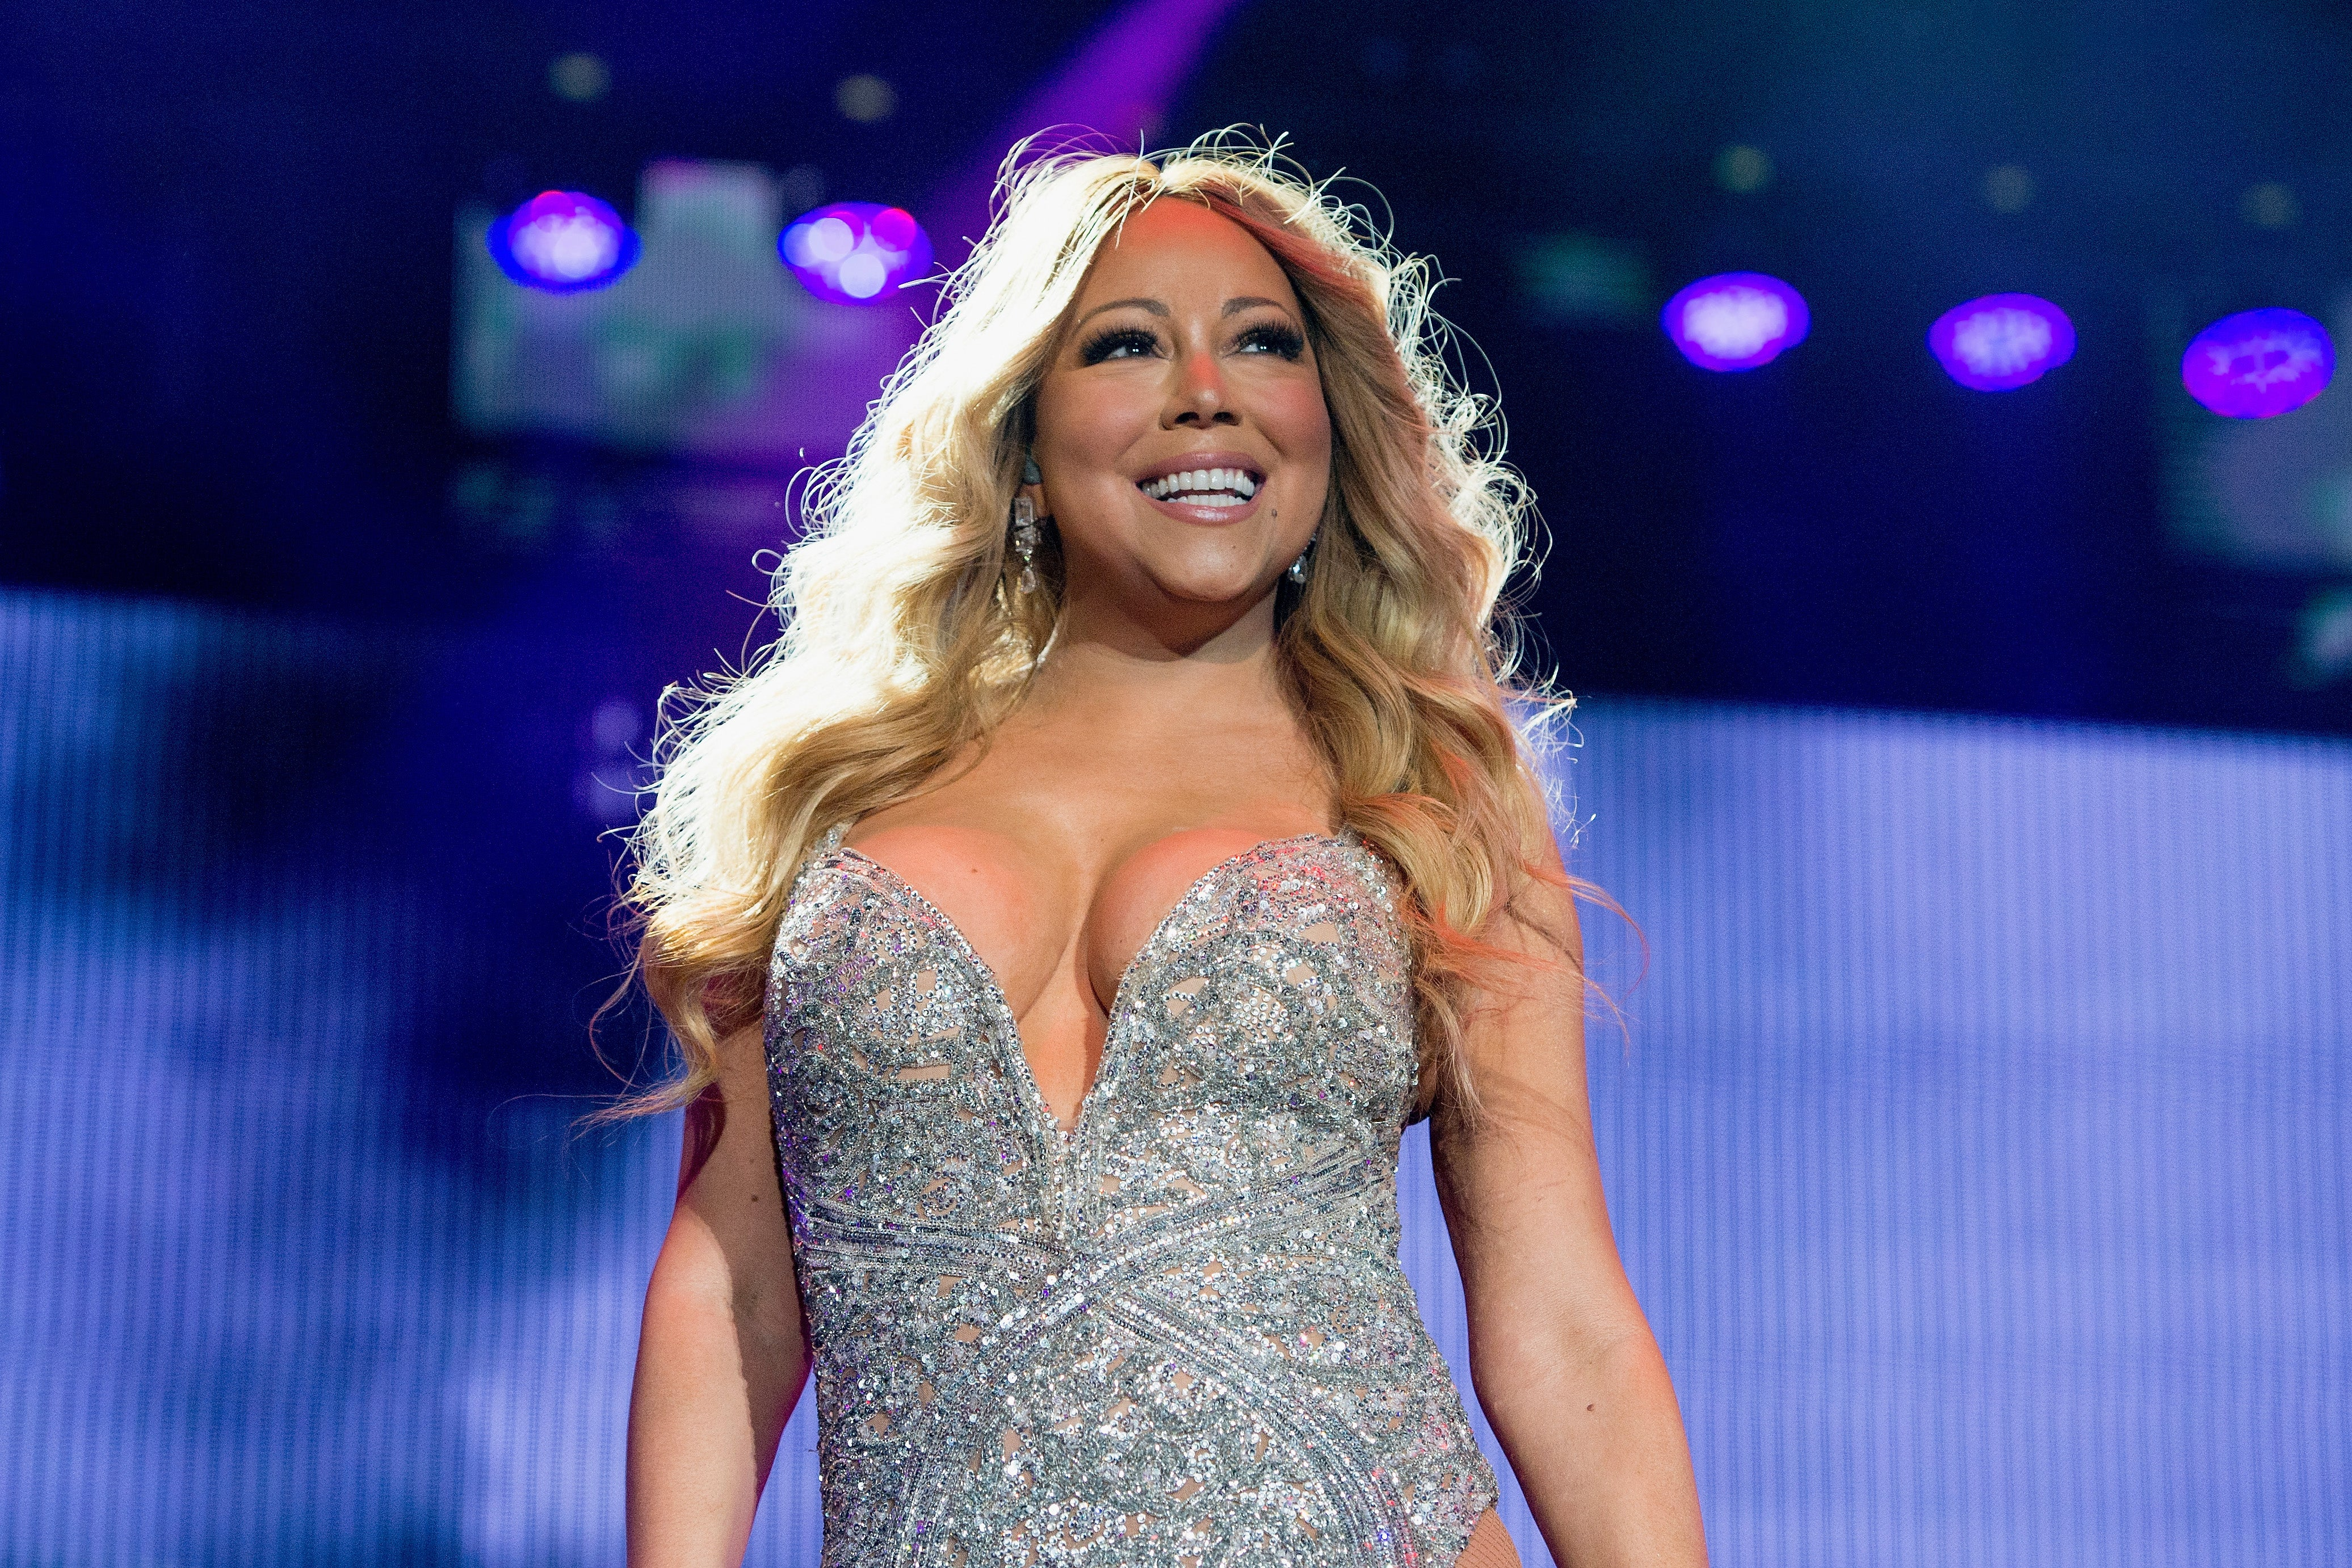 Mariah Careys Diet of Only Two Superfoods Is Not a Great Idea Mariah Careys Diet of Only Two Superfoods Is Not a Great Idea new picture